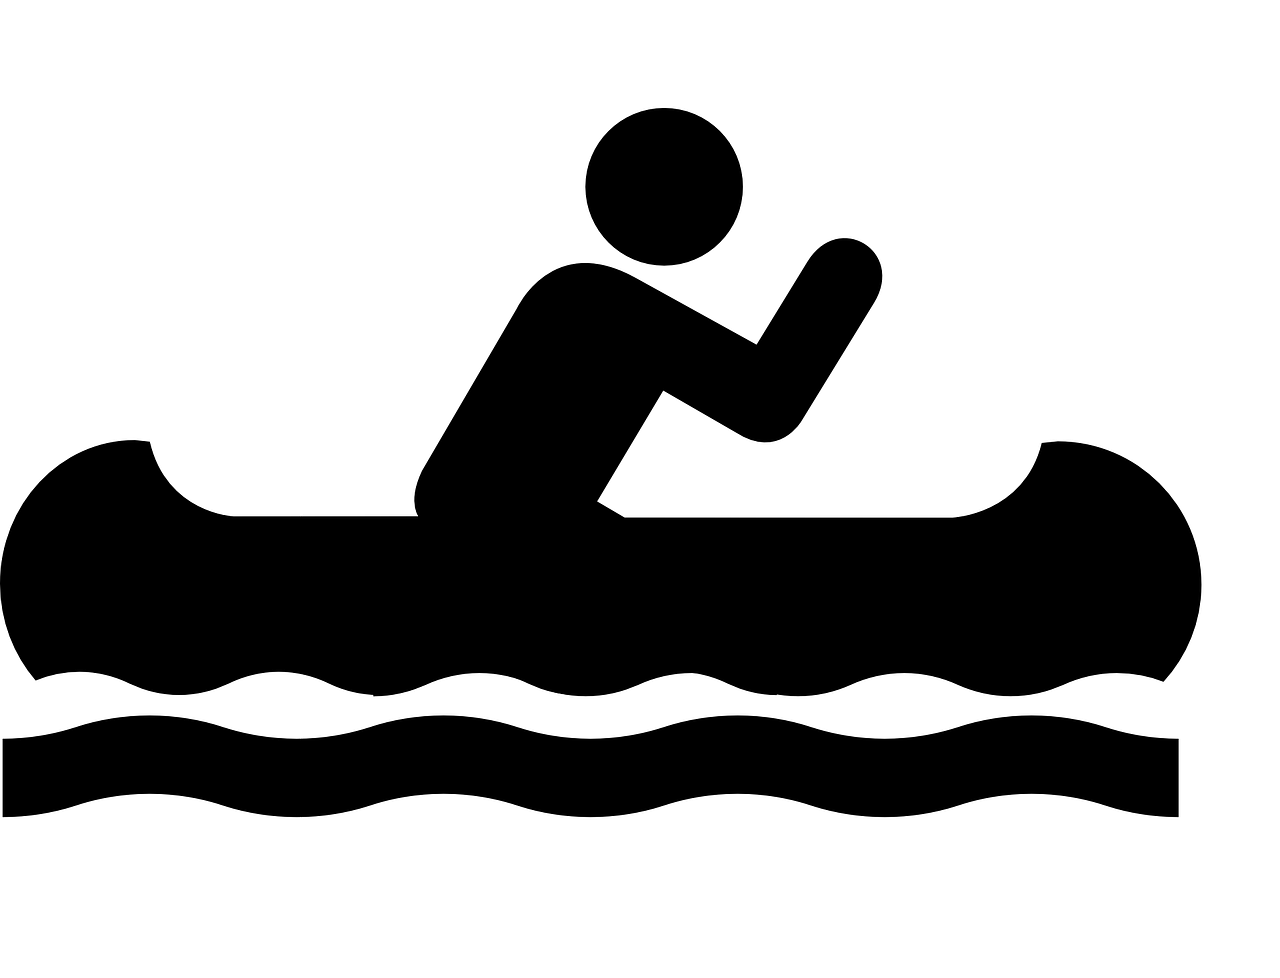 Boating clipart water activity. Boat canoe sign symbol